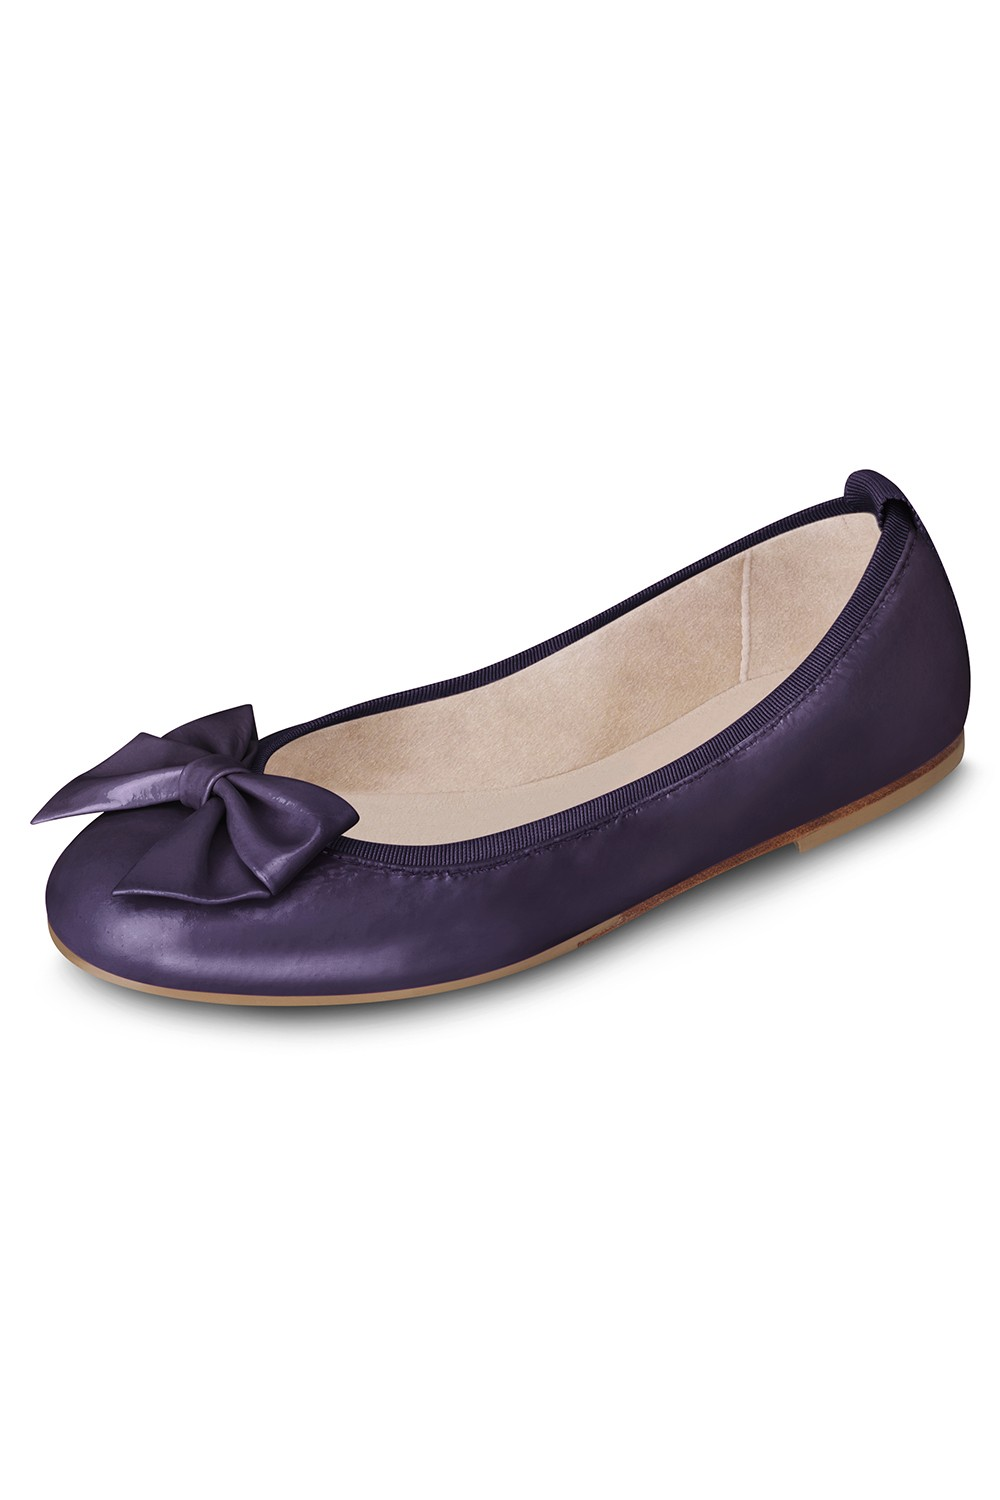 Abigail Ballet Flat Girls Fashion Shoes